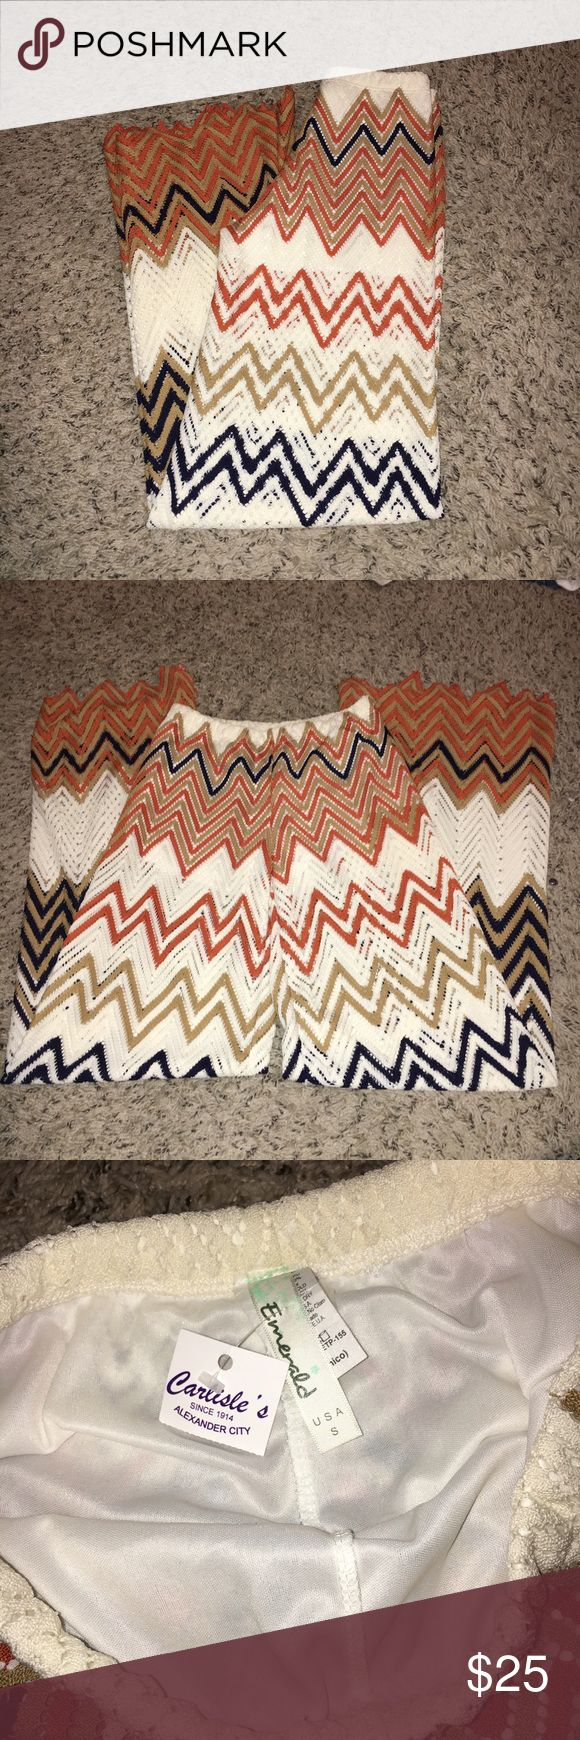 Chevron pants Casual, airy chevron pants. Orange, blue, and white. Can be adjusted to a shorter length simply by cutting the thread in between the pattern. Size small. Pants